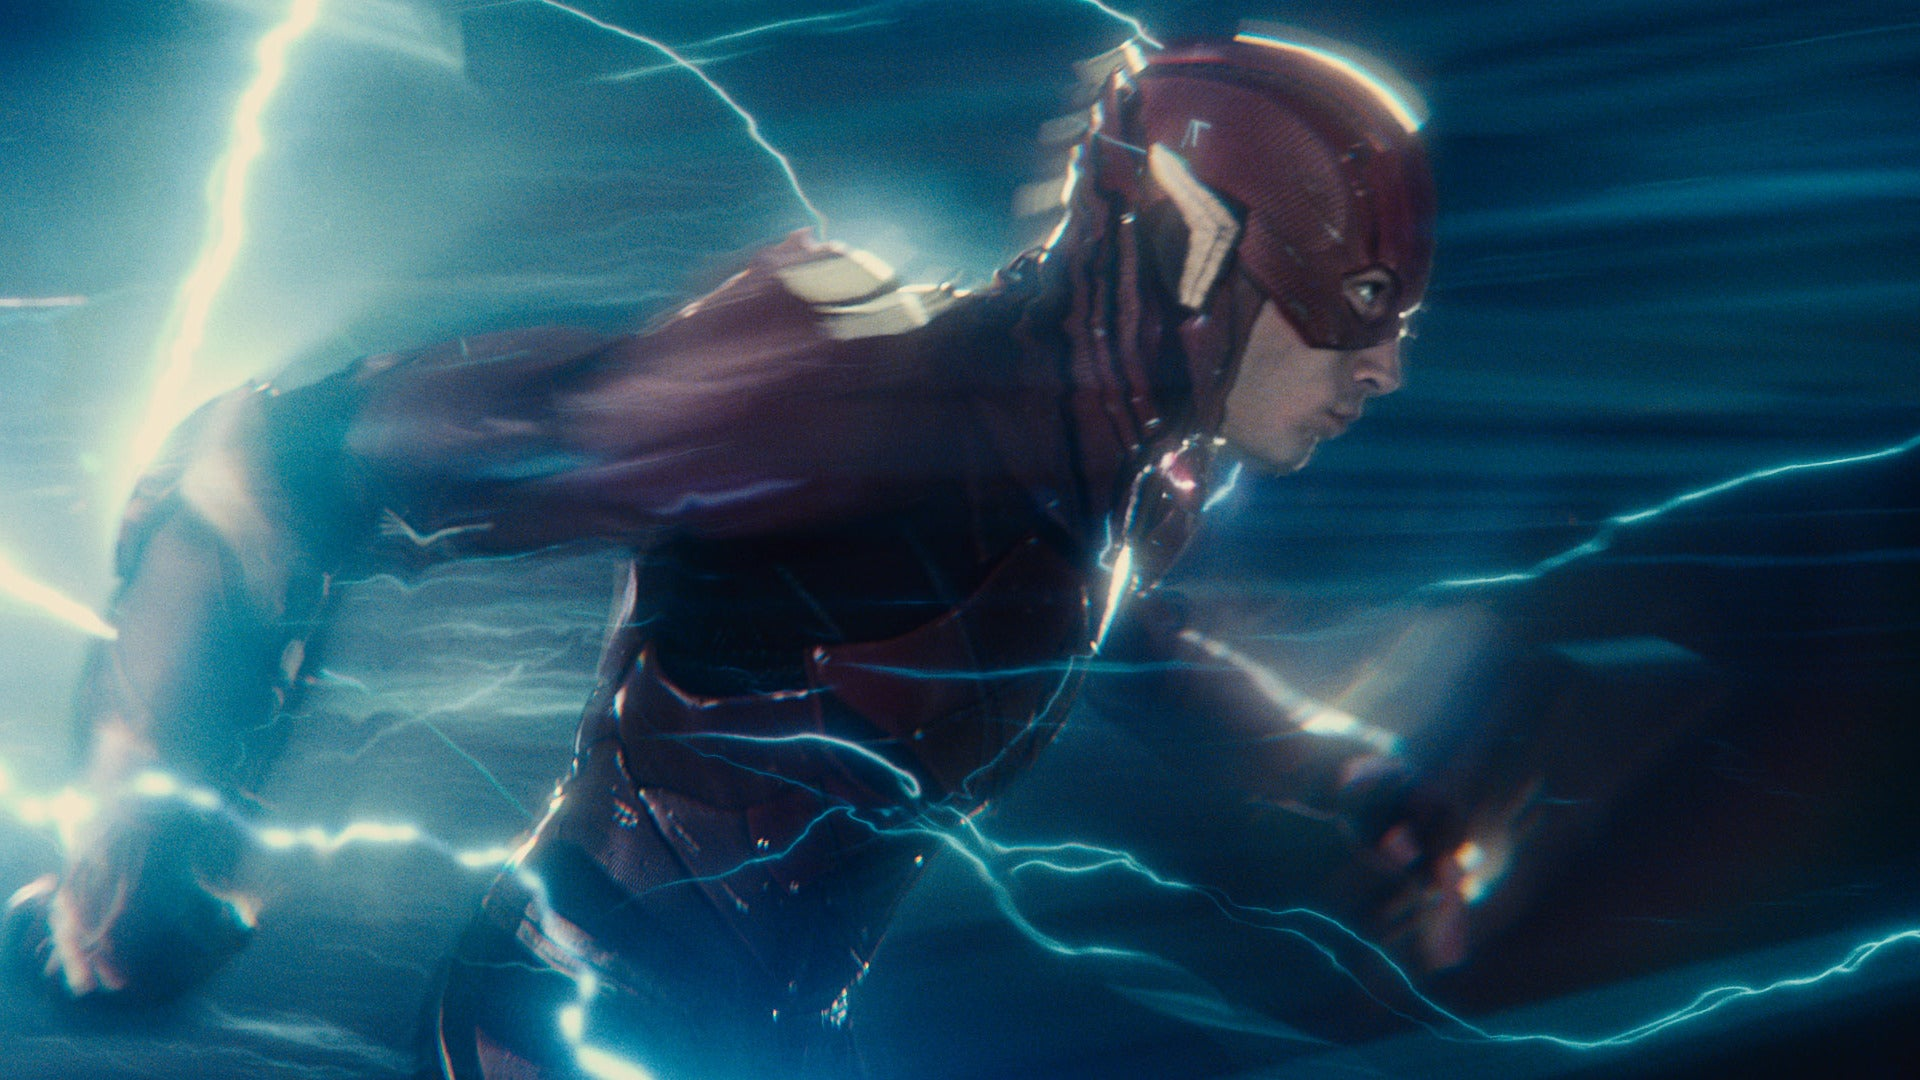 The First Reactions To Justice League Have Surfaced, And They're All Over The Place